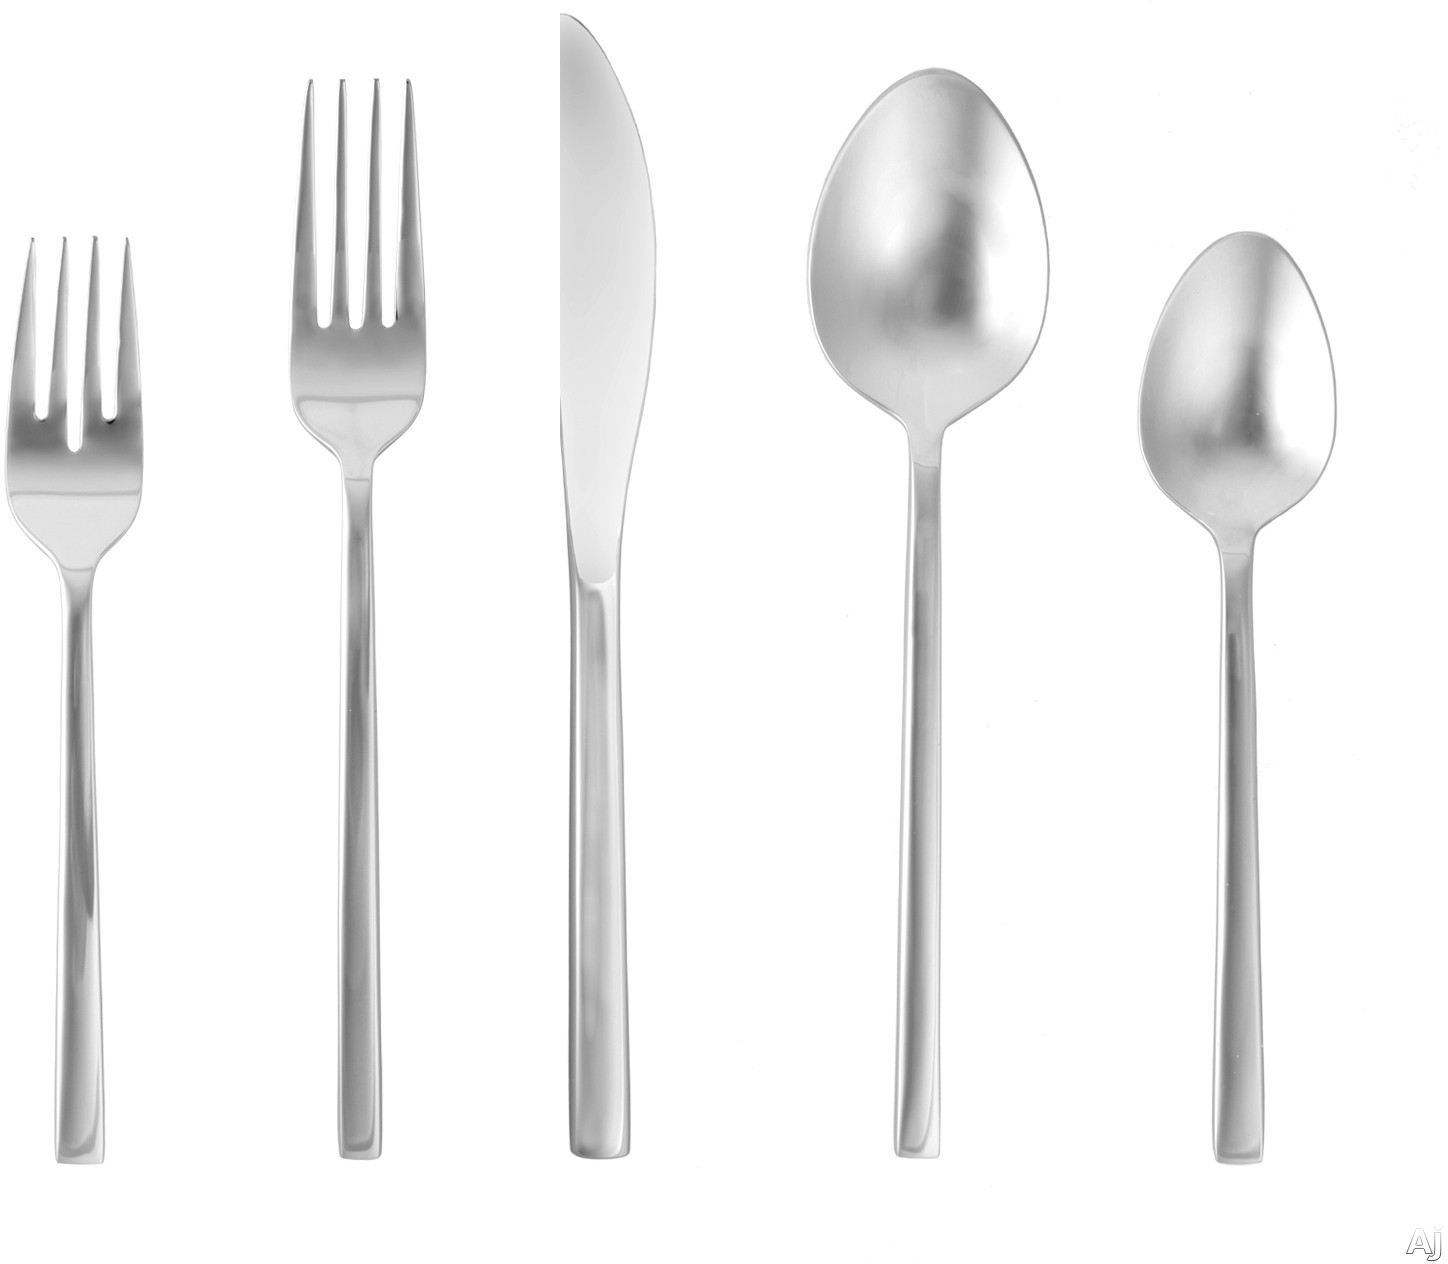 Fortessa 5PPS16520PC Arezzo Stainless Steel 20-Piece Flatware Set with Heavy Gauge Stainless Steel and Balanced Design